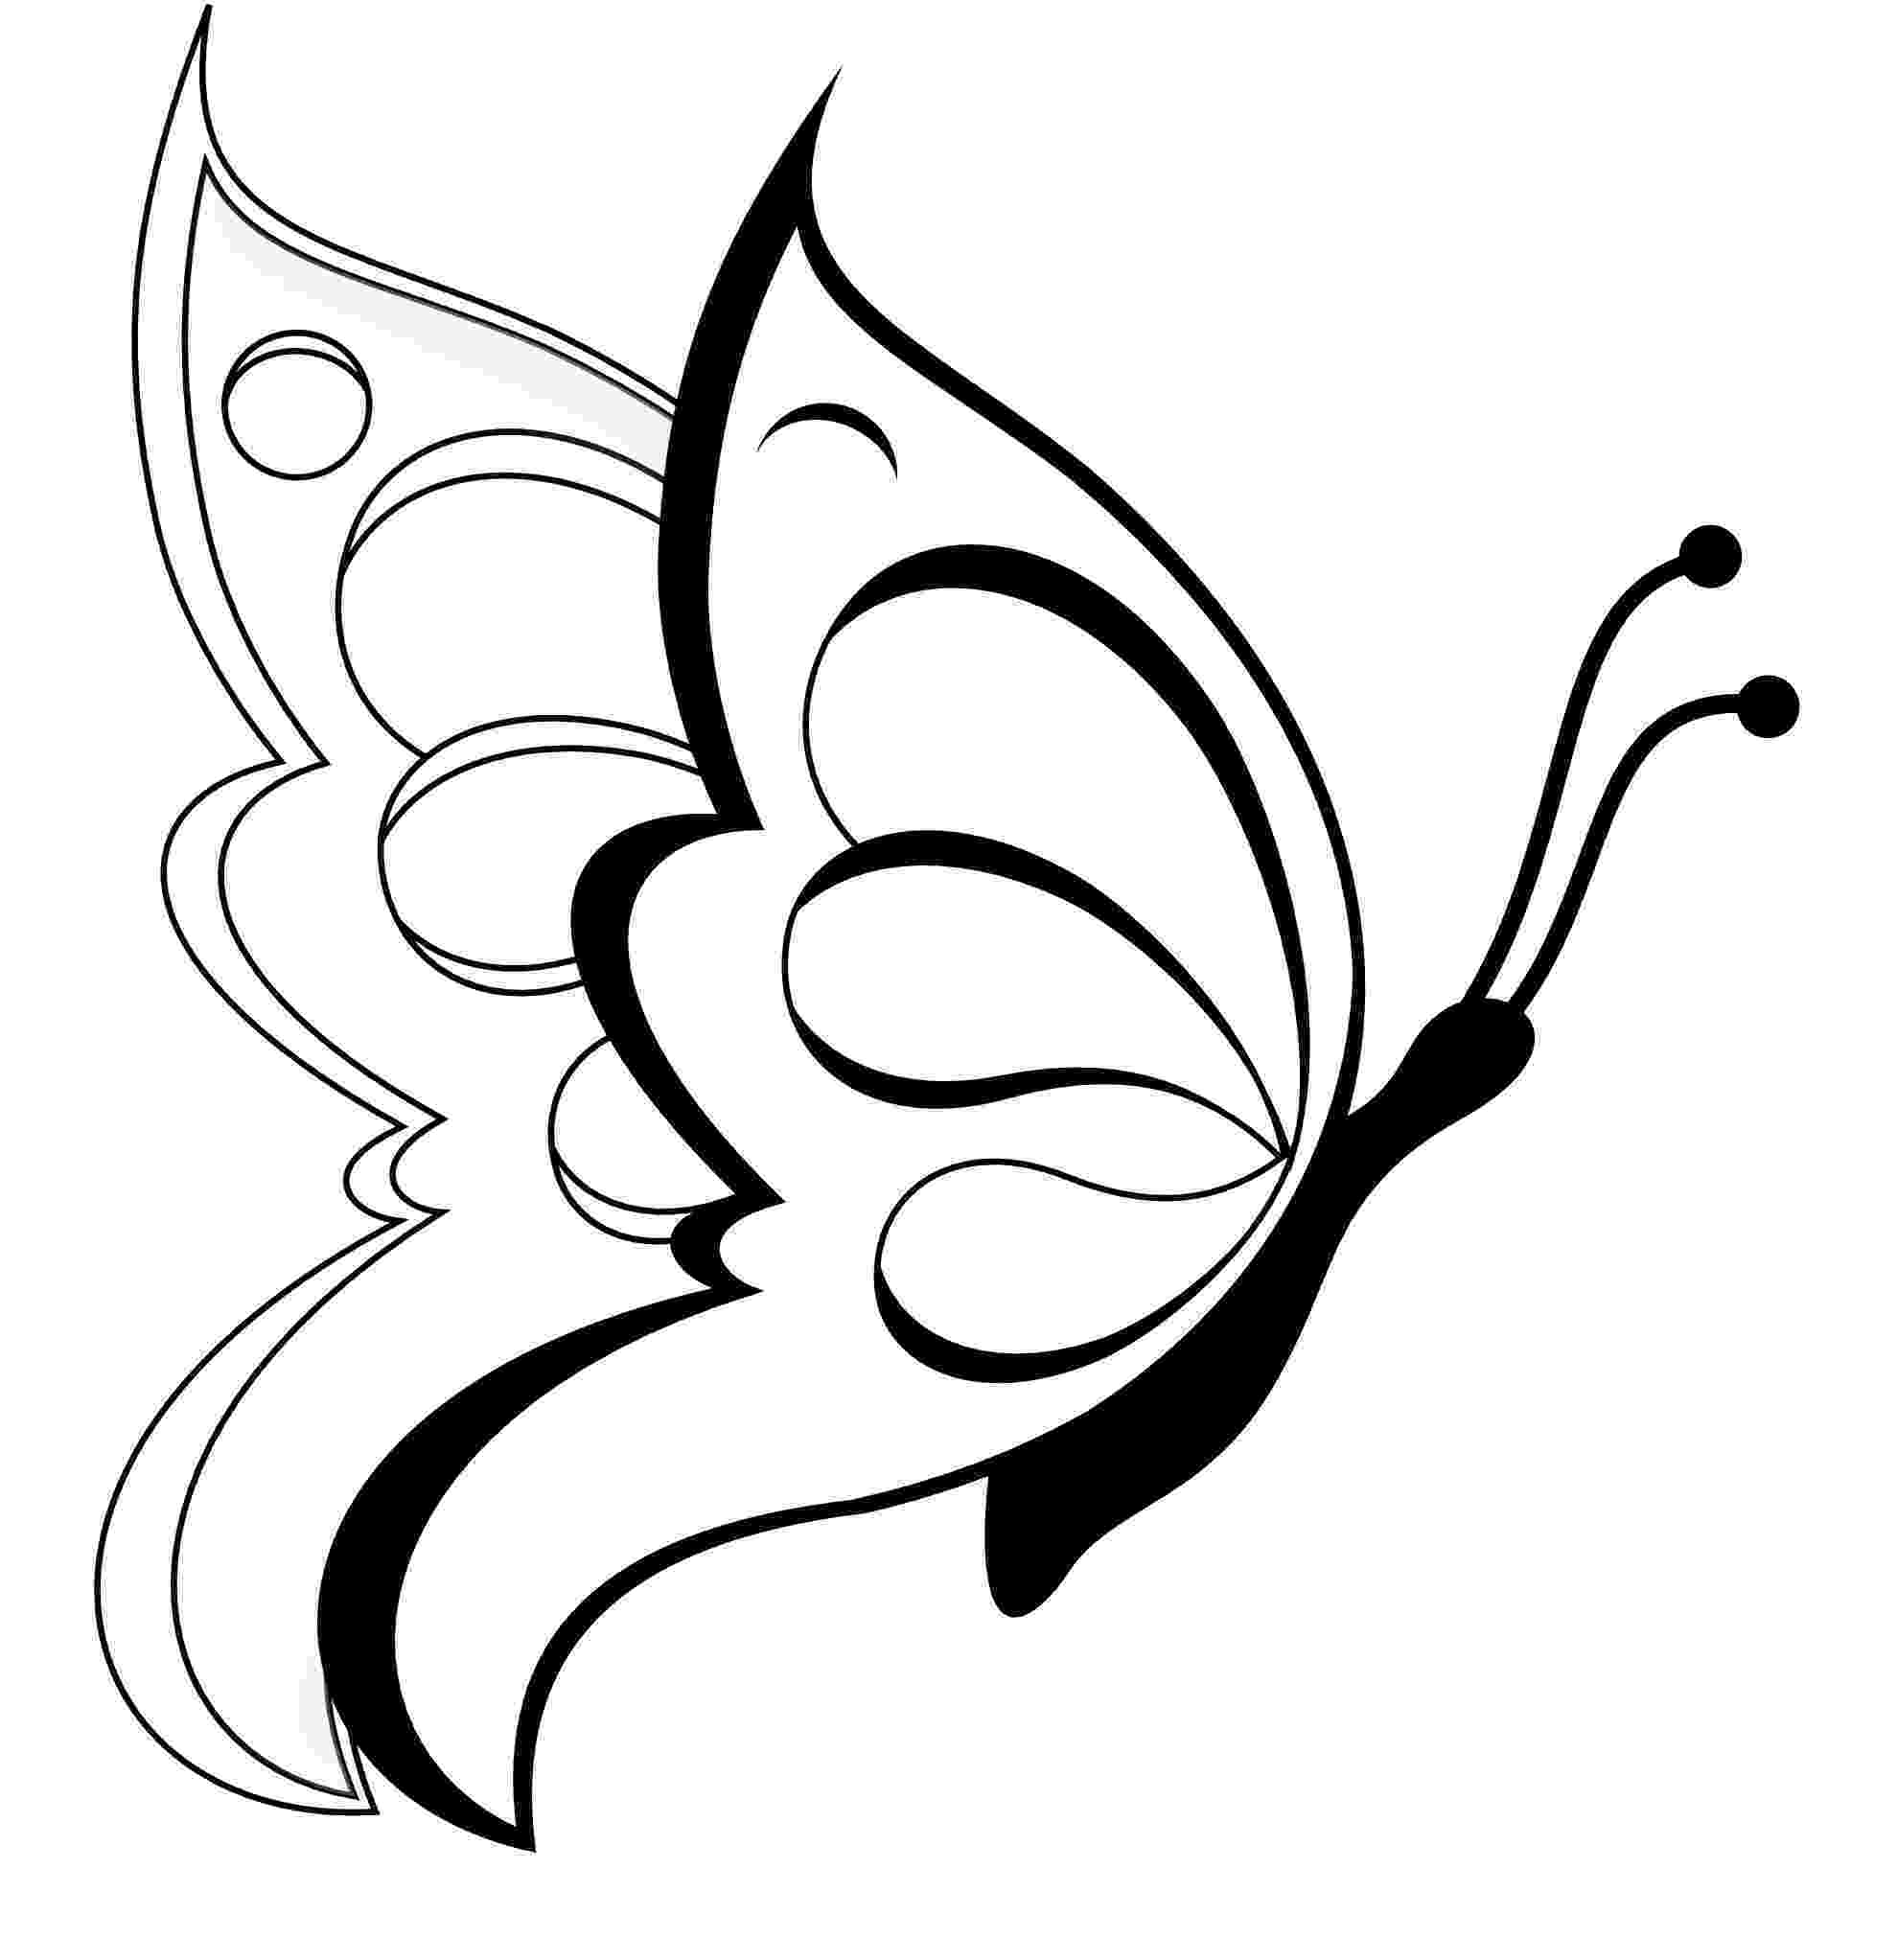 butterfly coloring pages free printable simple butterfly coloring pages getcoloringpagescom free pages coloring butterfly printable